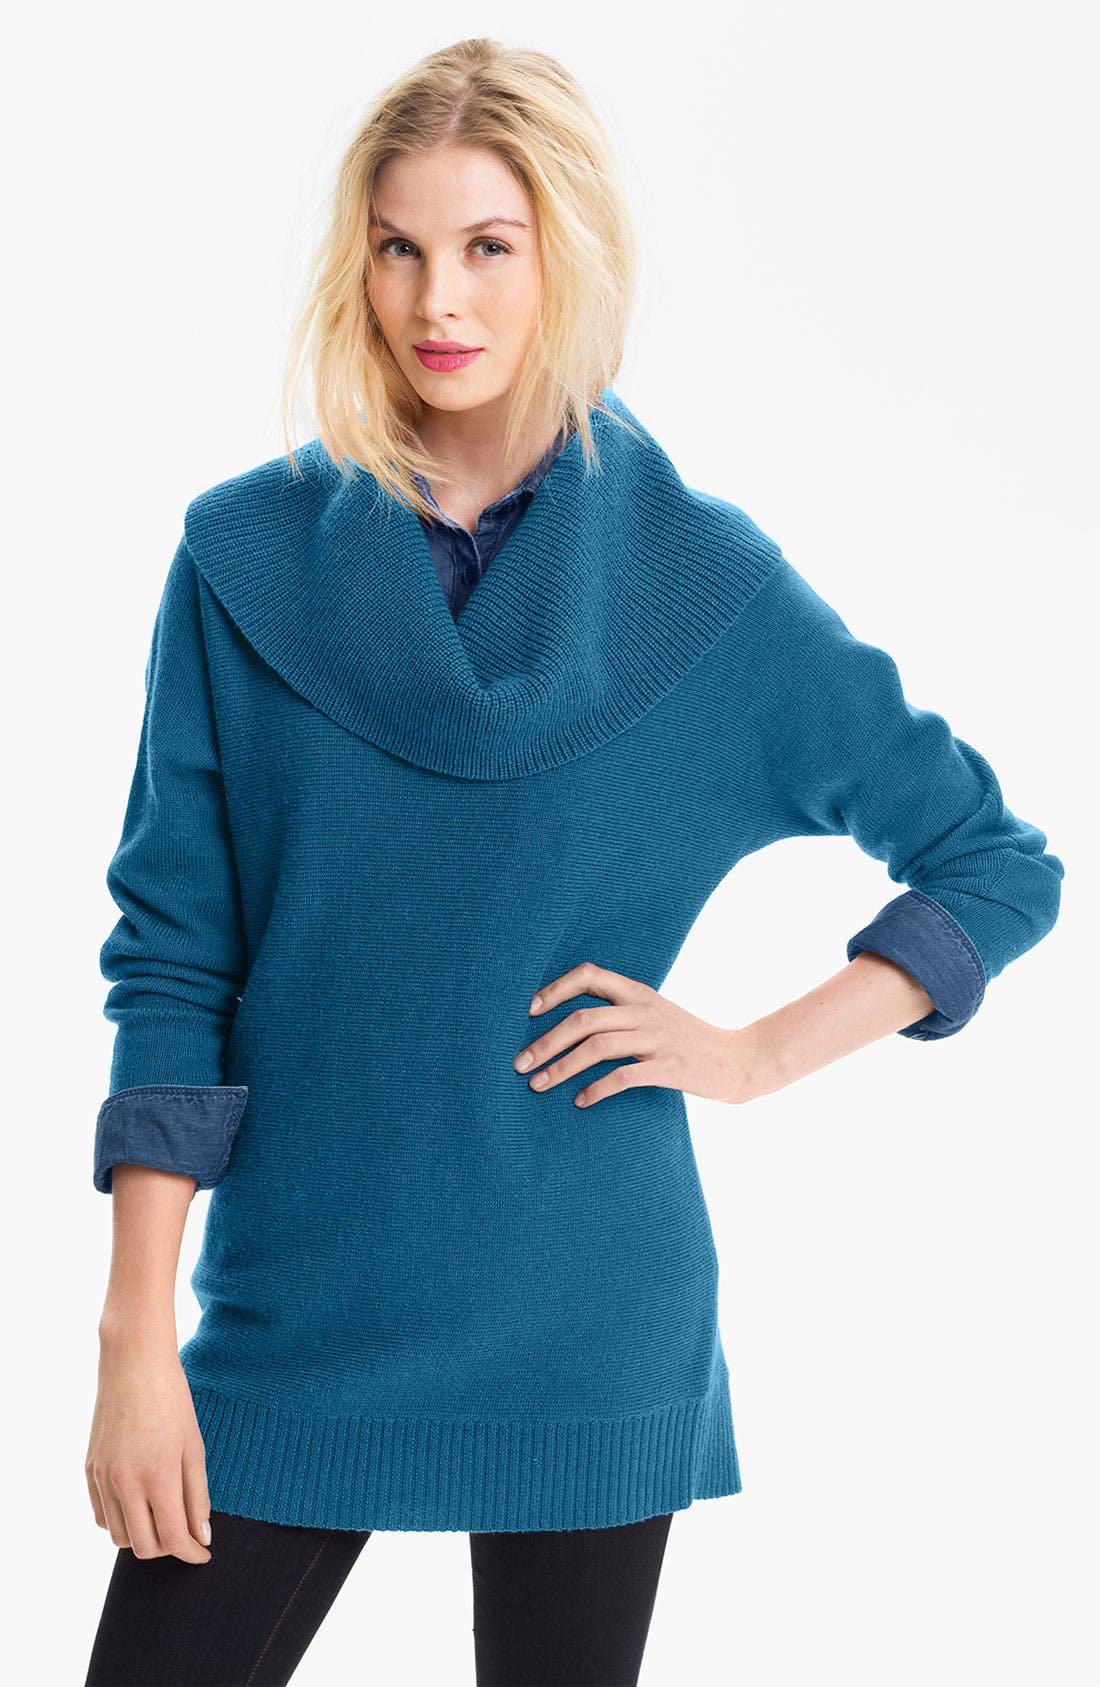 Alternate Image 1 Selected - Caslon® Cowl Neck Dolman Sweater (Petite)